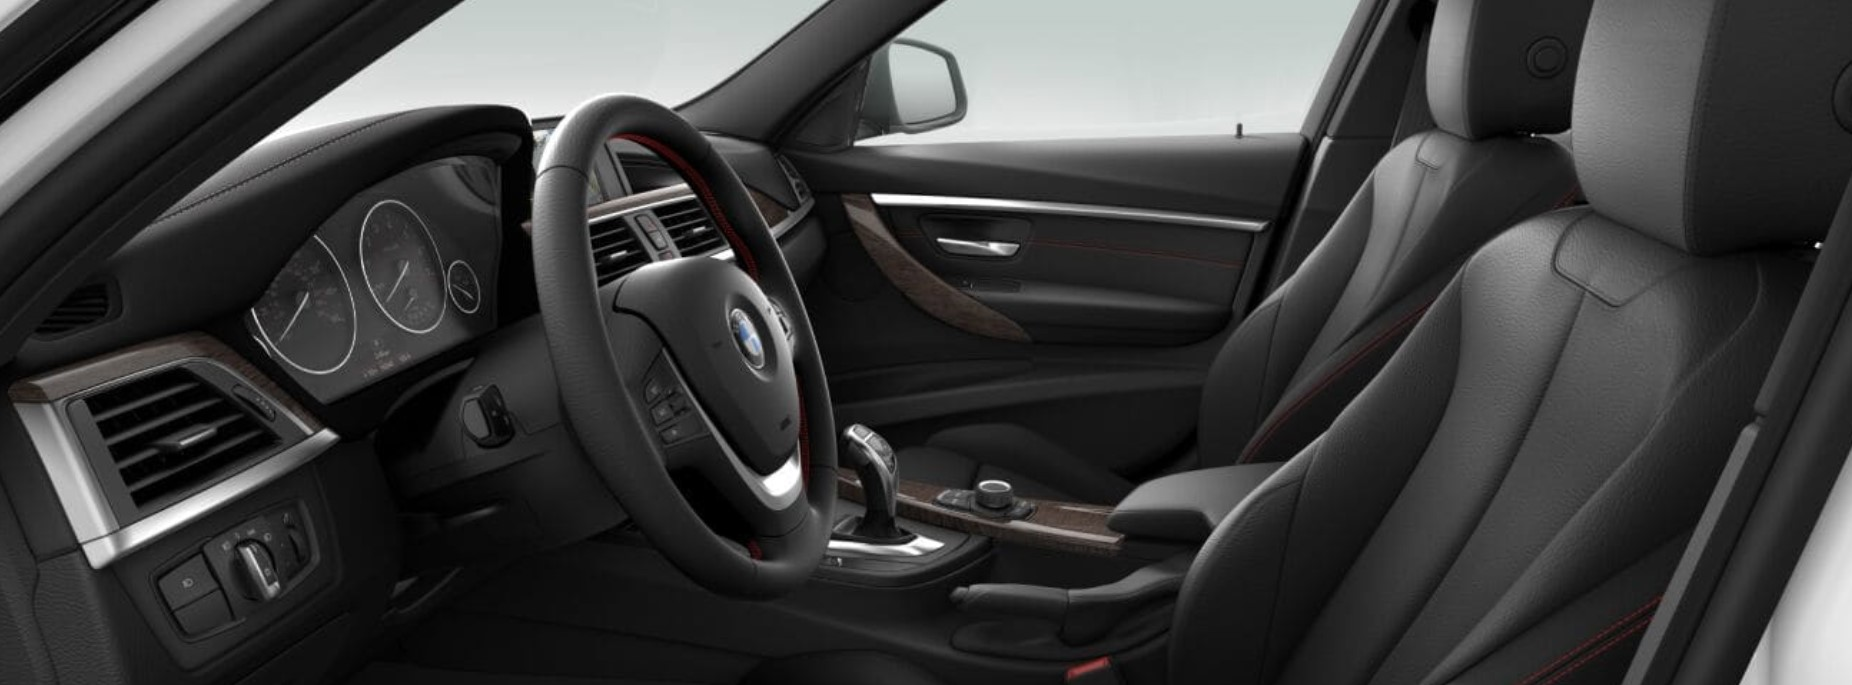 2018 BMW 330i Sedan Black Leather Interior Picture